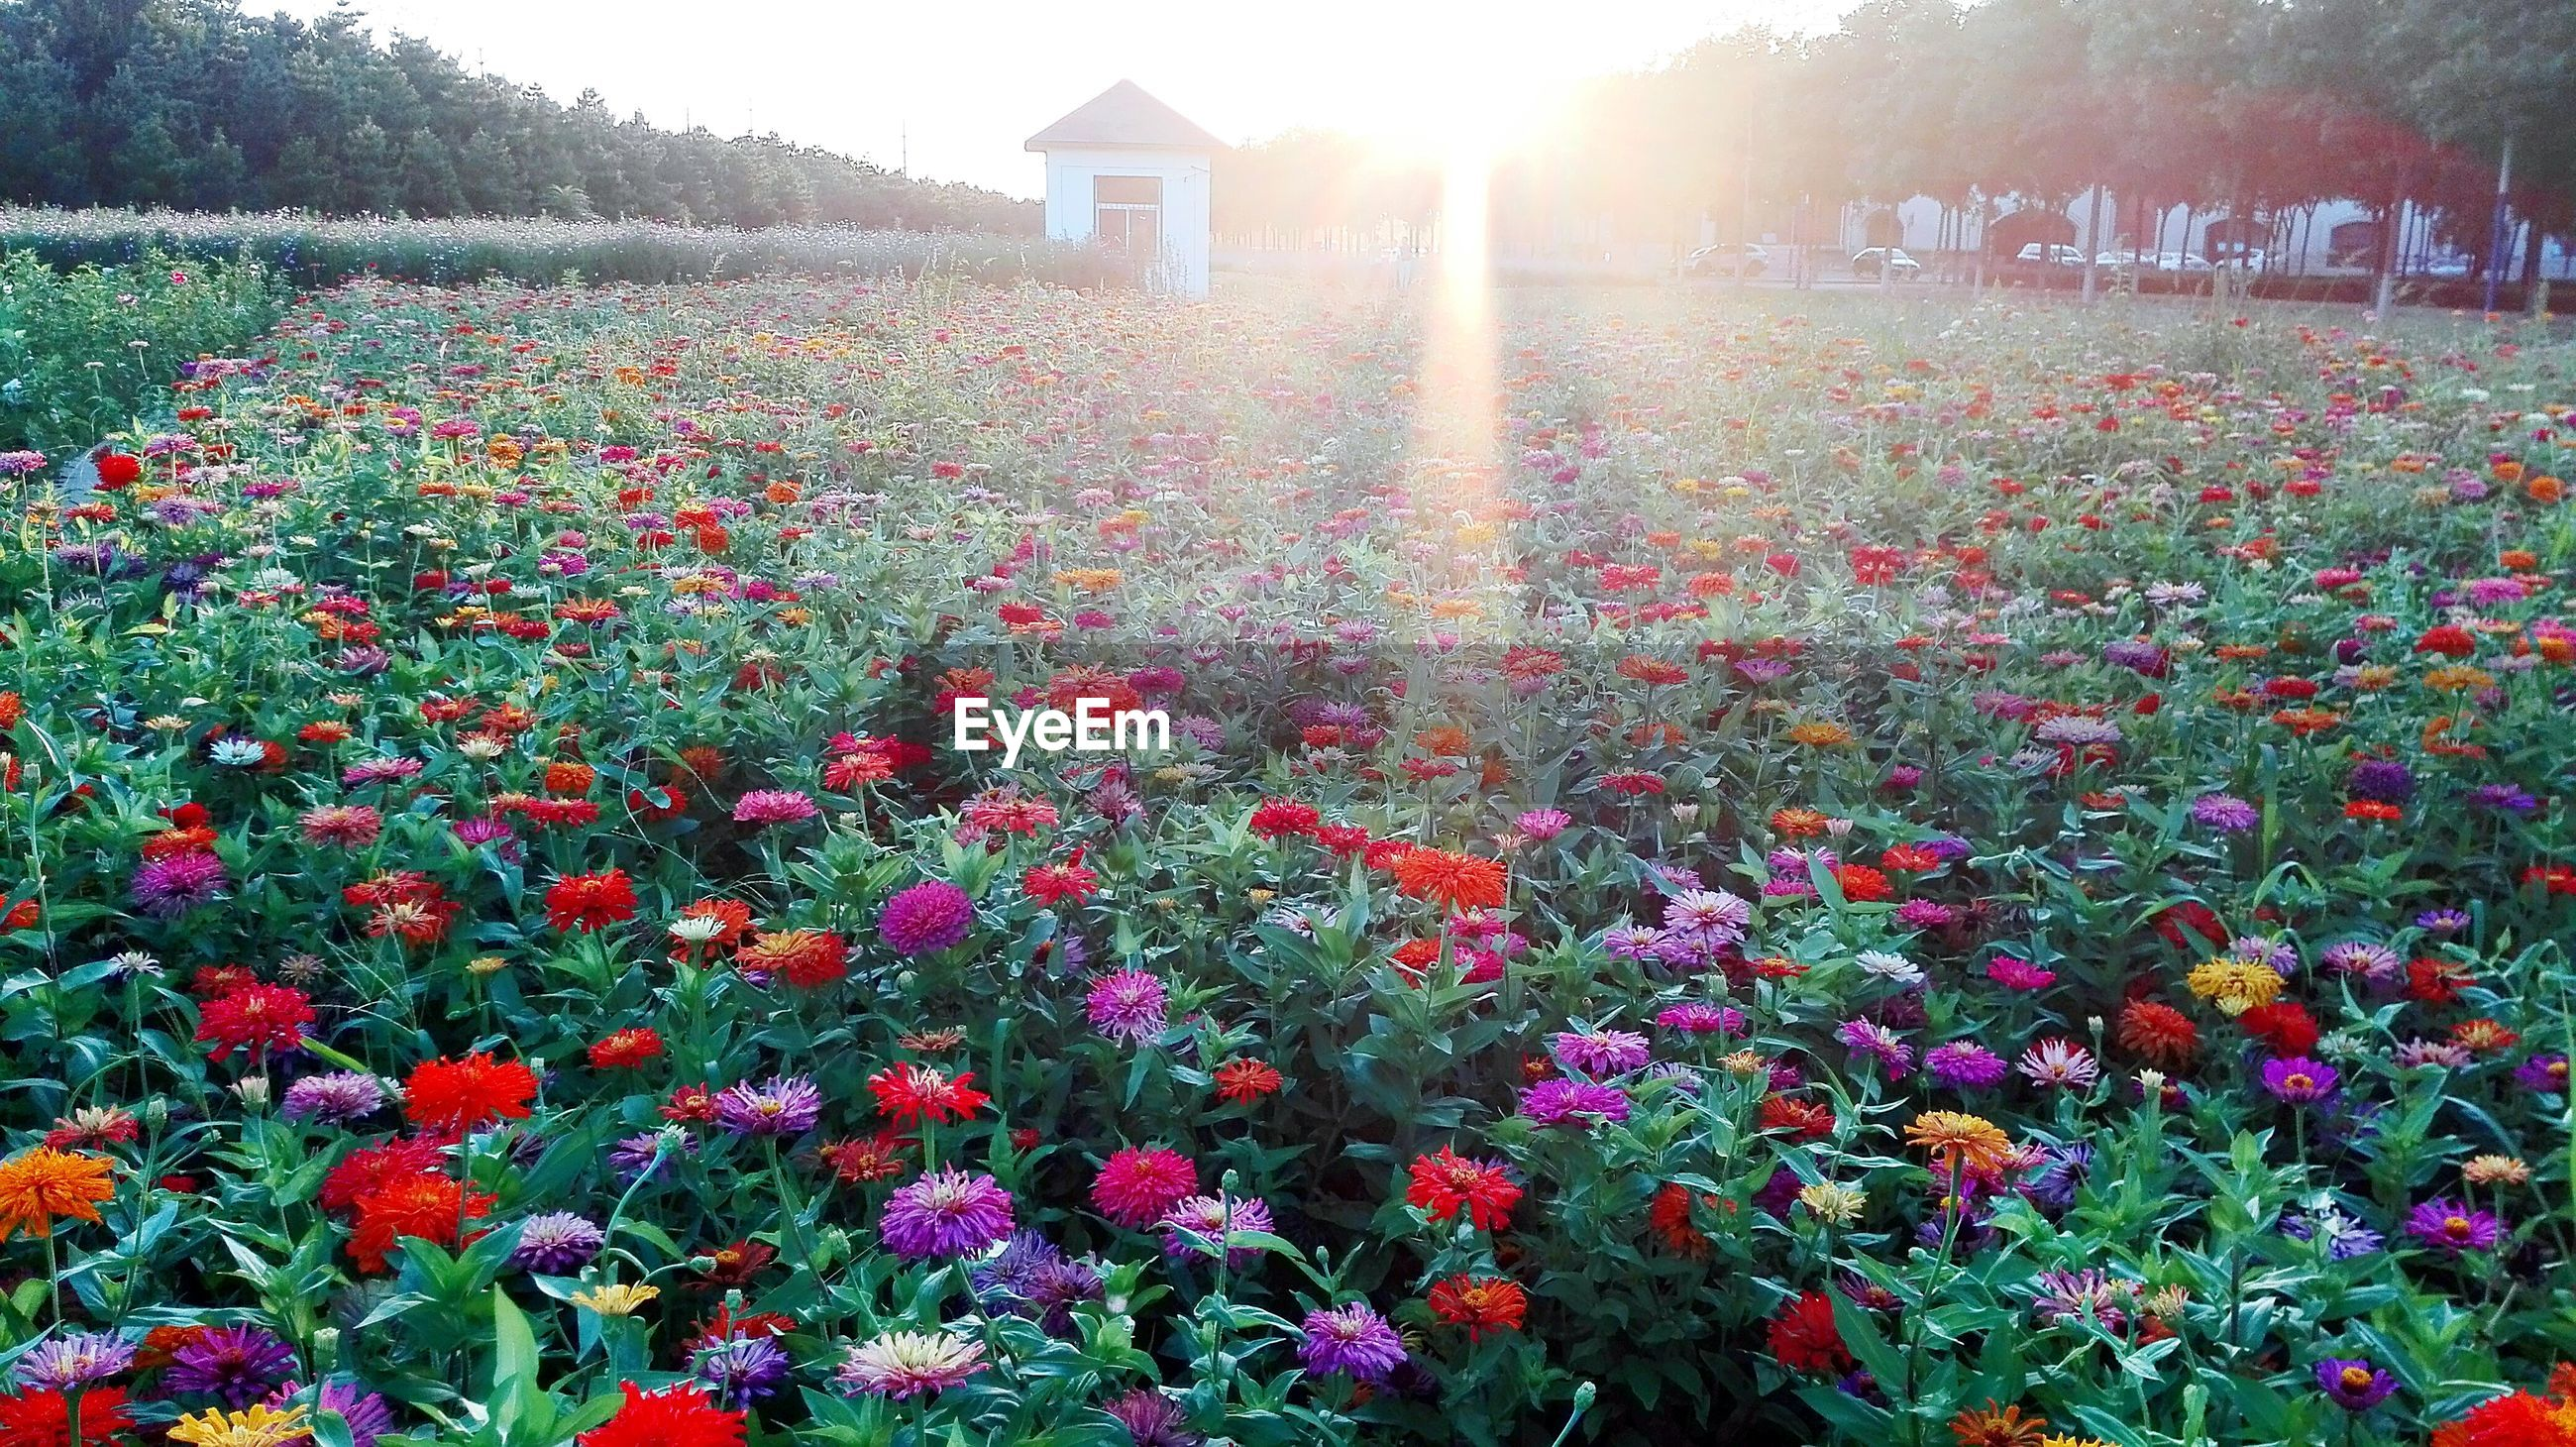 flower, growth, freshness, plant, beauty in nature, sunlight, nature, fragility, blooming, petal, sun, in bloom, sunbeam, flowerbed, red, tree, outdoors, lens flare, park - man made space, abundance